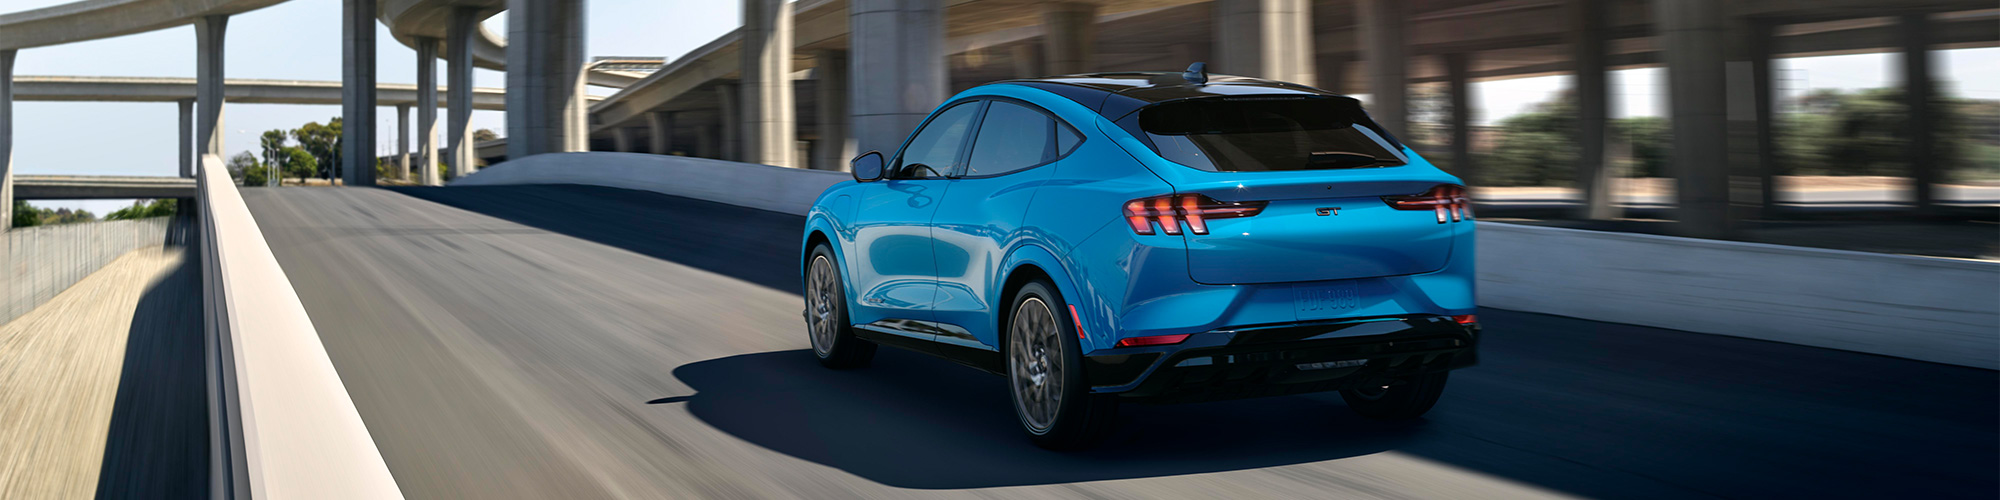 2021 Ford Mustang Mach-E Back